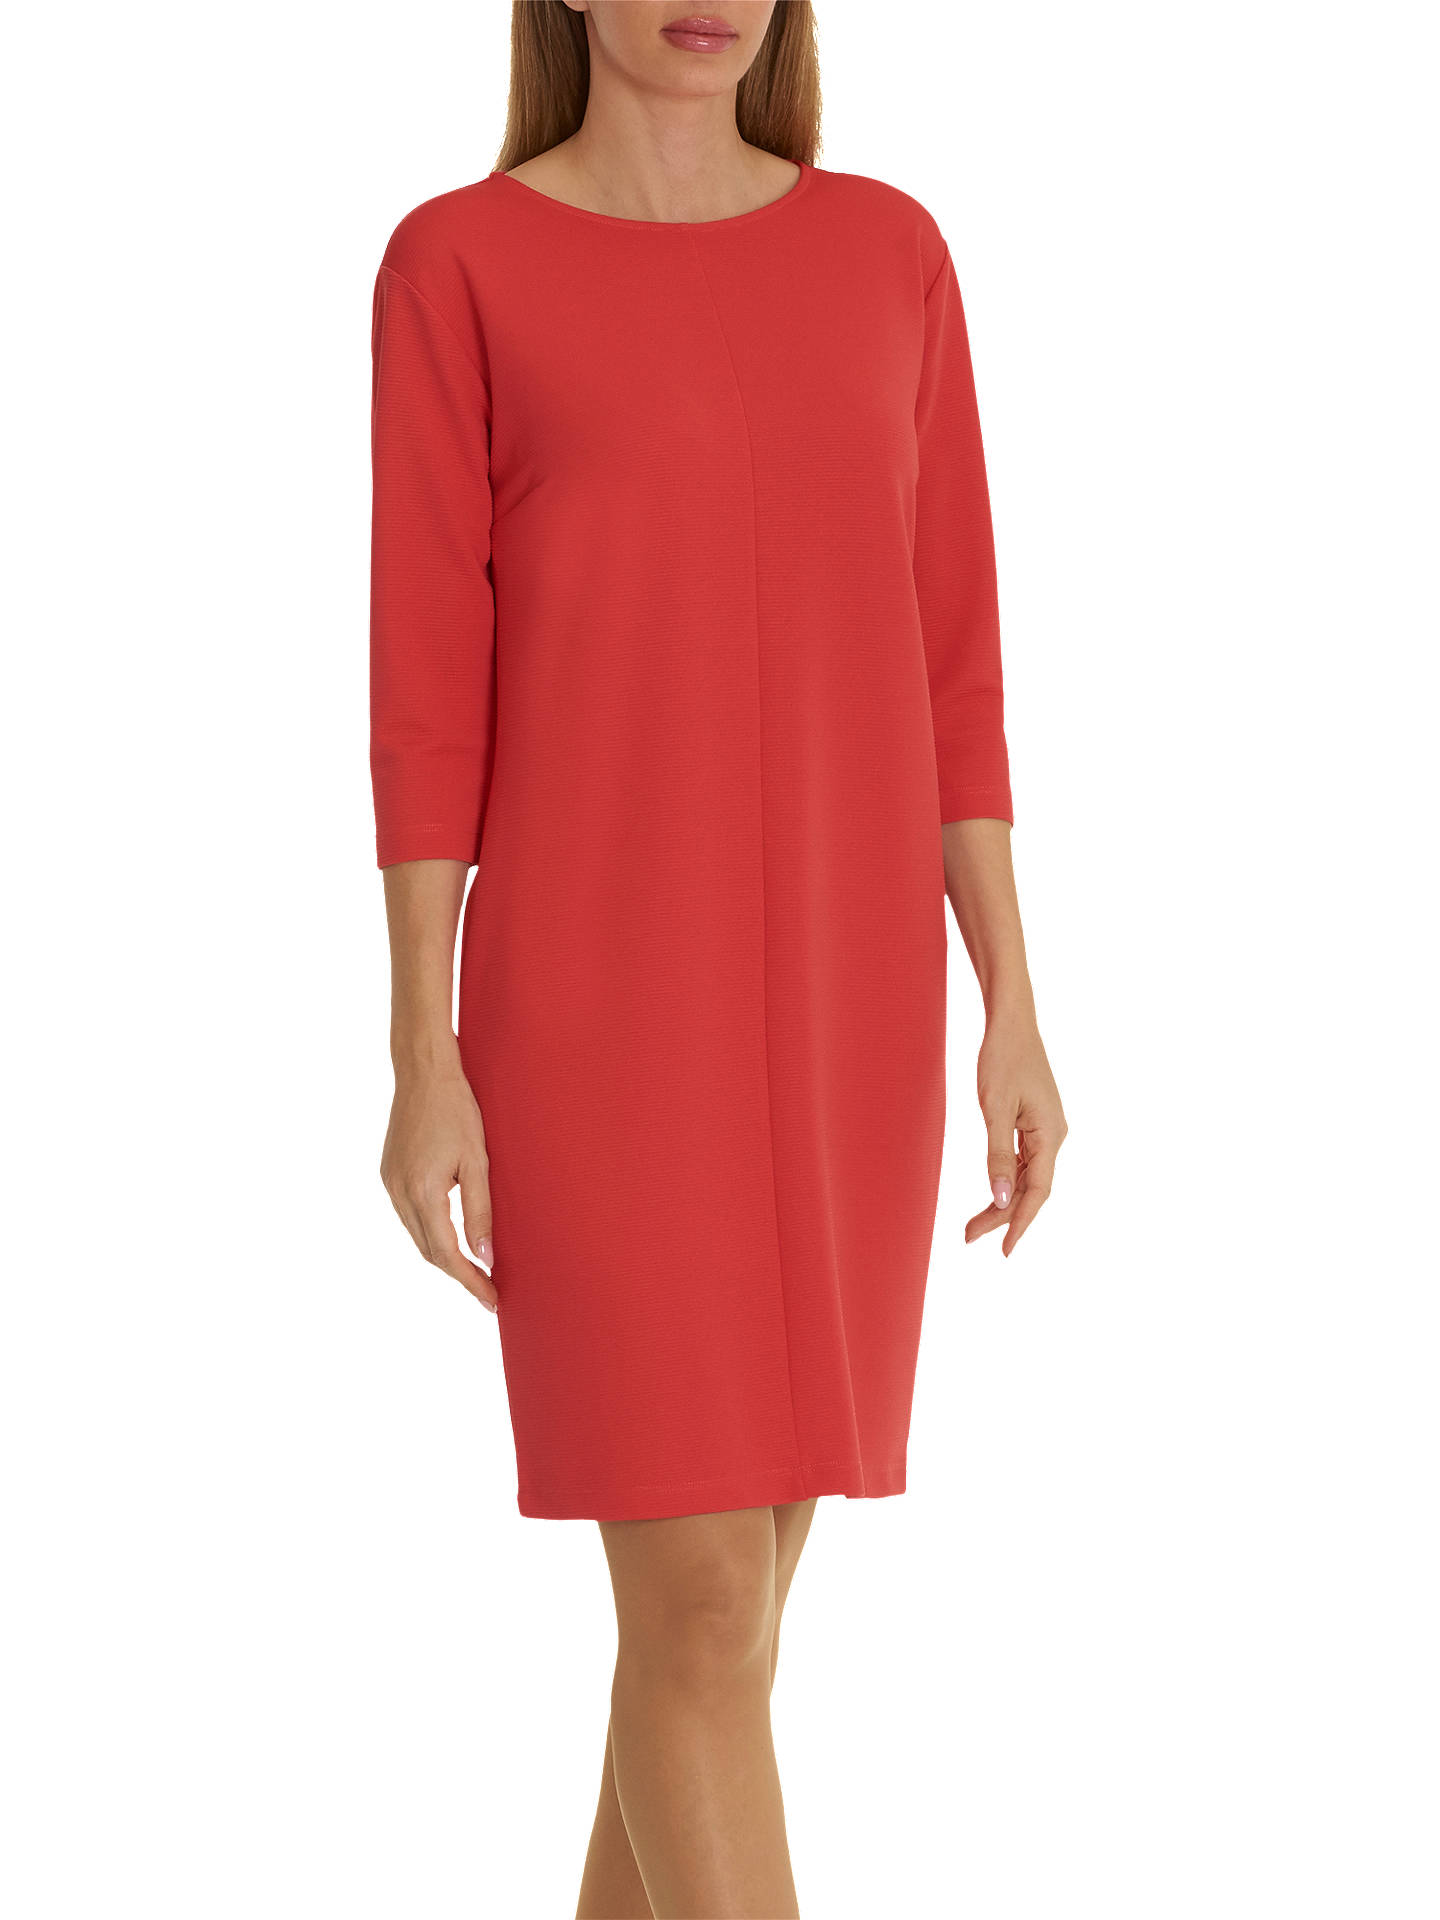 BuyBetty Barclay Fine Ribbed Dress, Coral Red, 16 Online at johnlewis.com